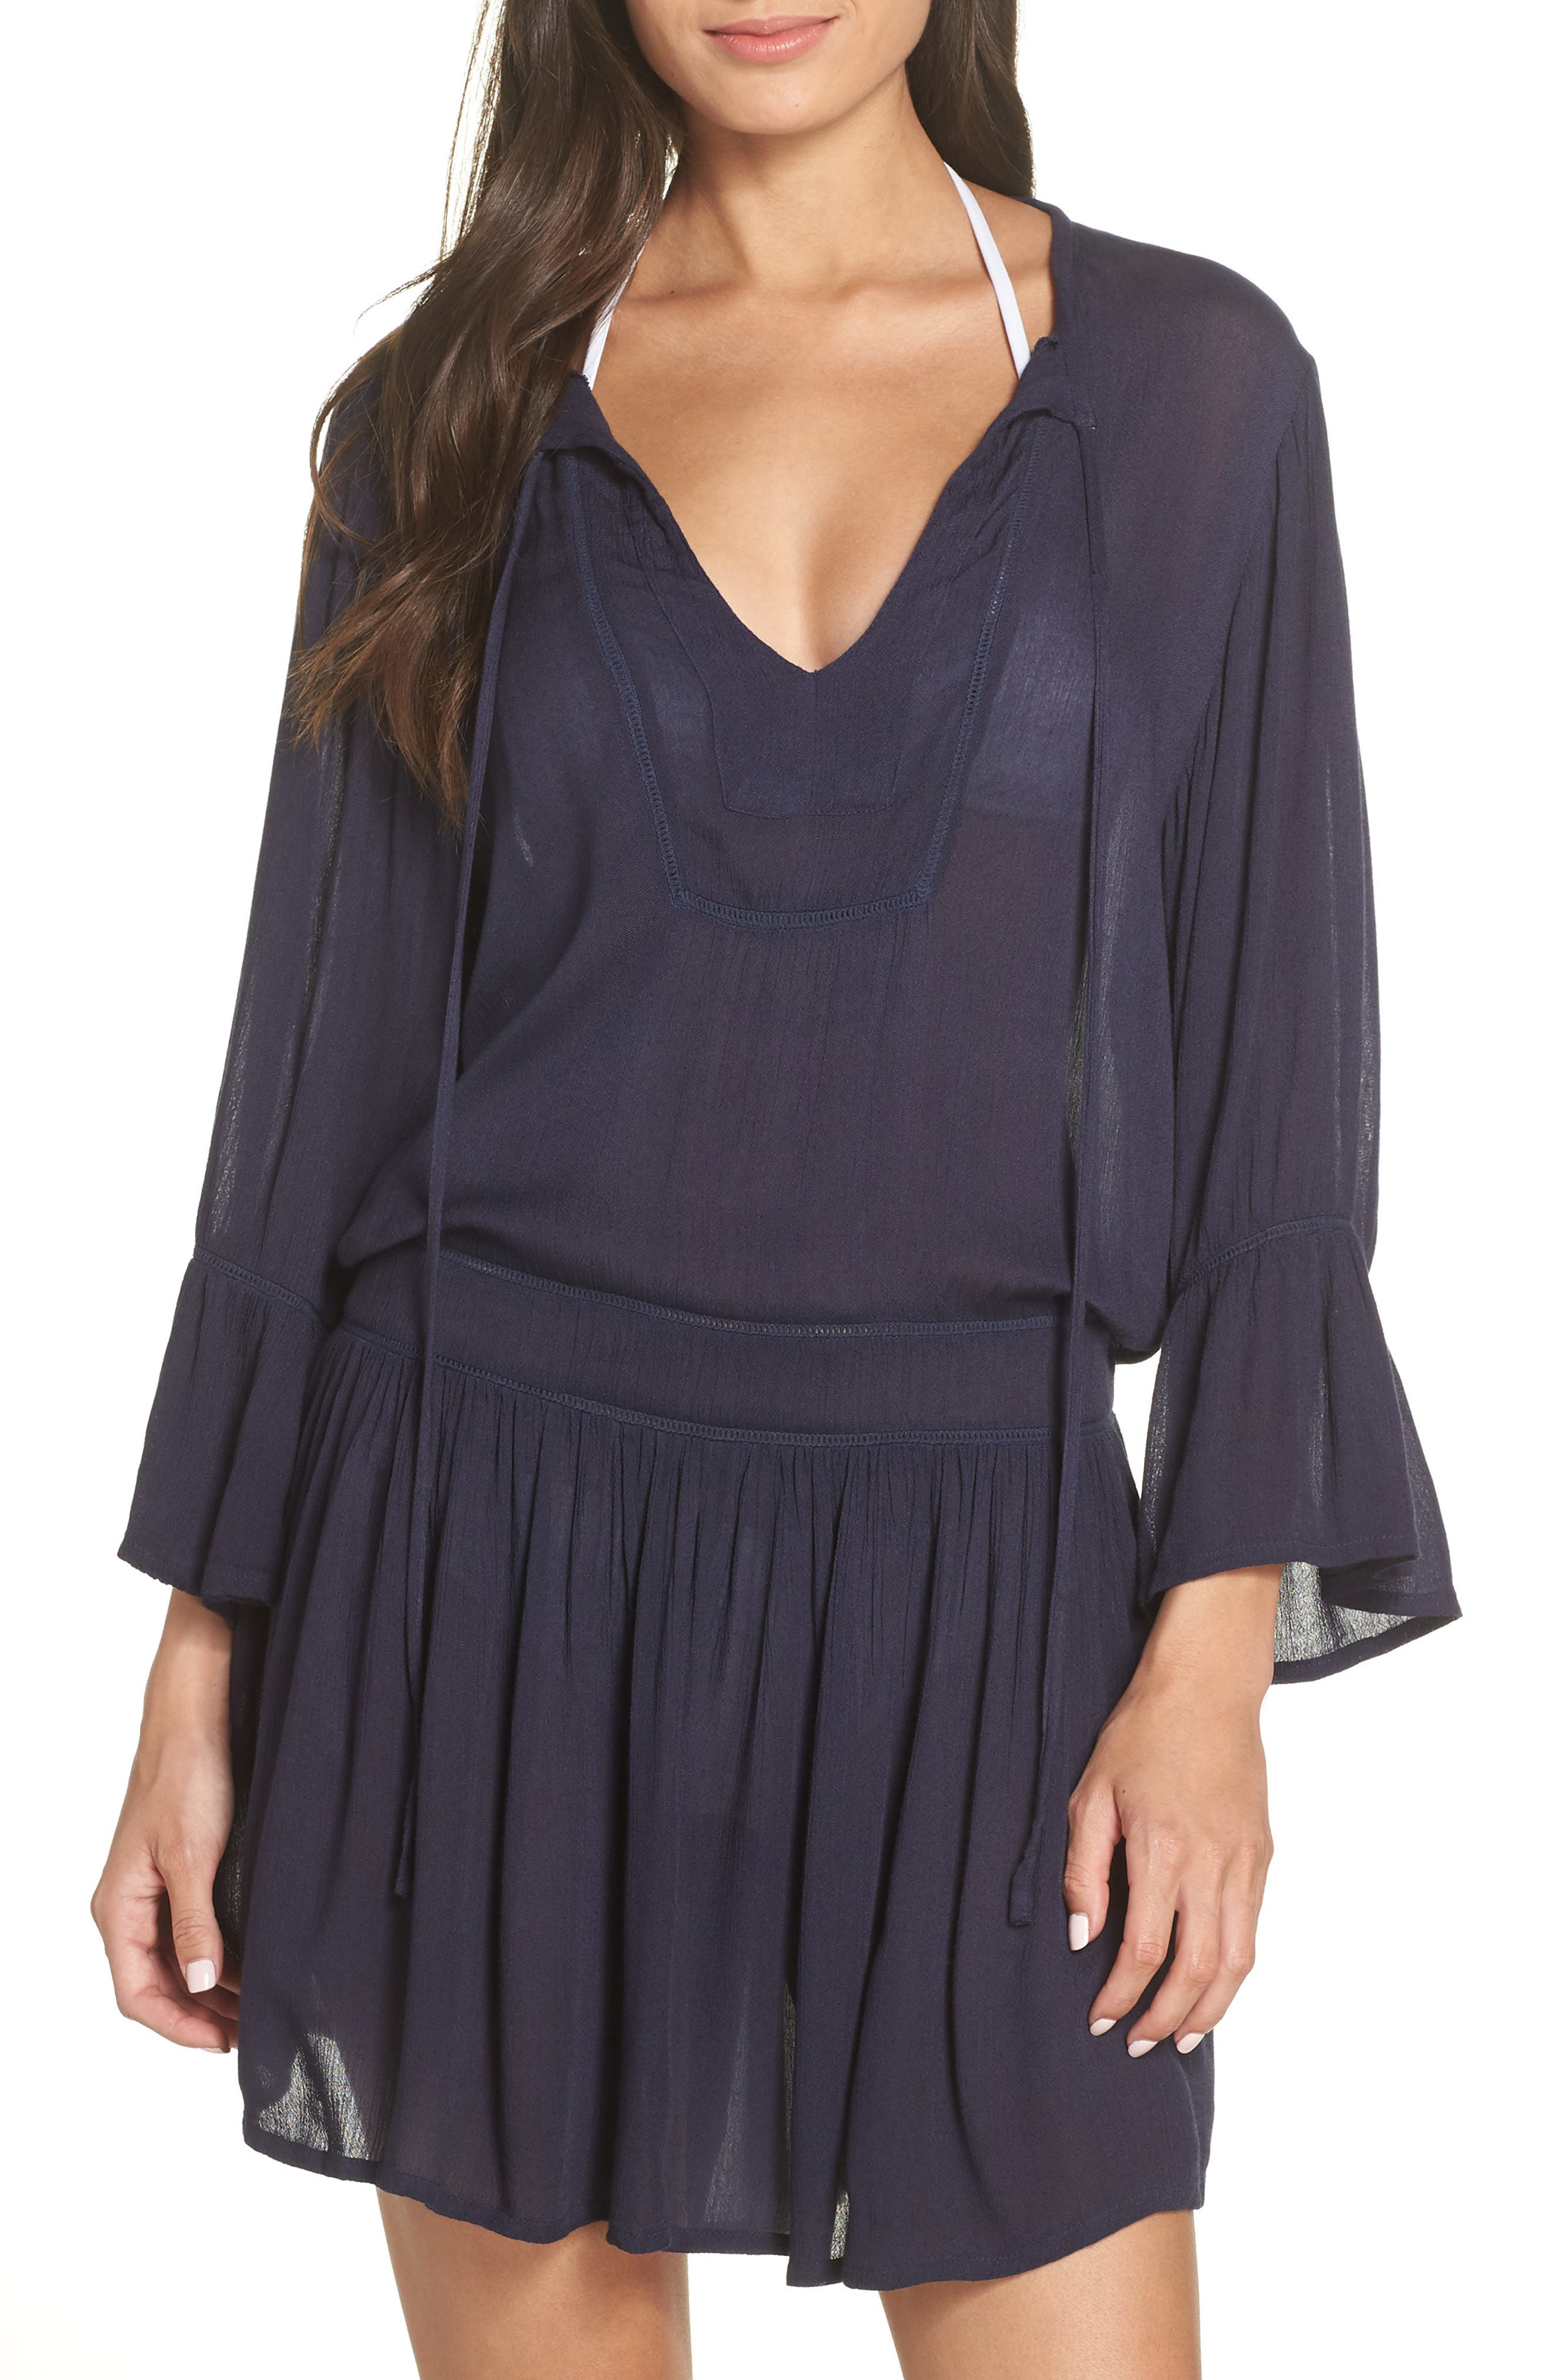 VIX SWIMWEAR Agatha Cover-Up Dress in Navy